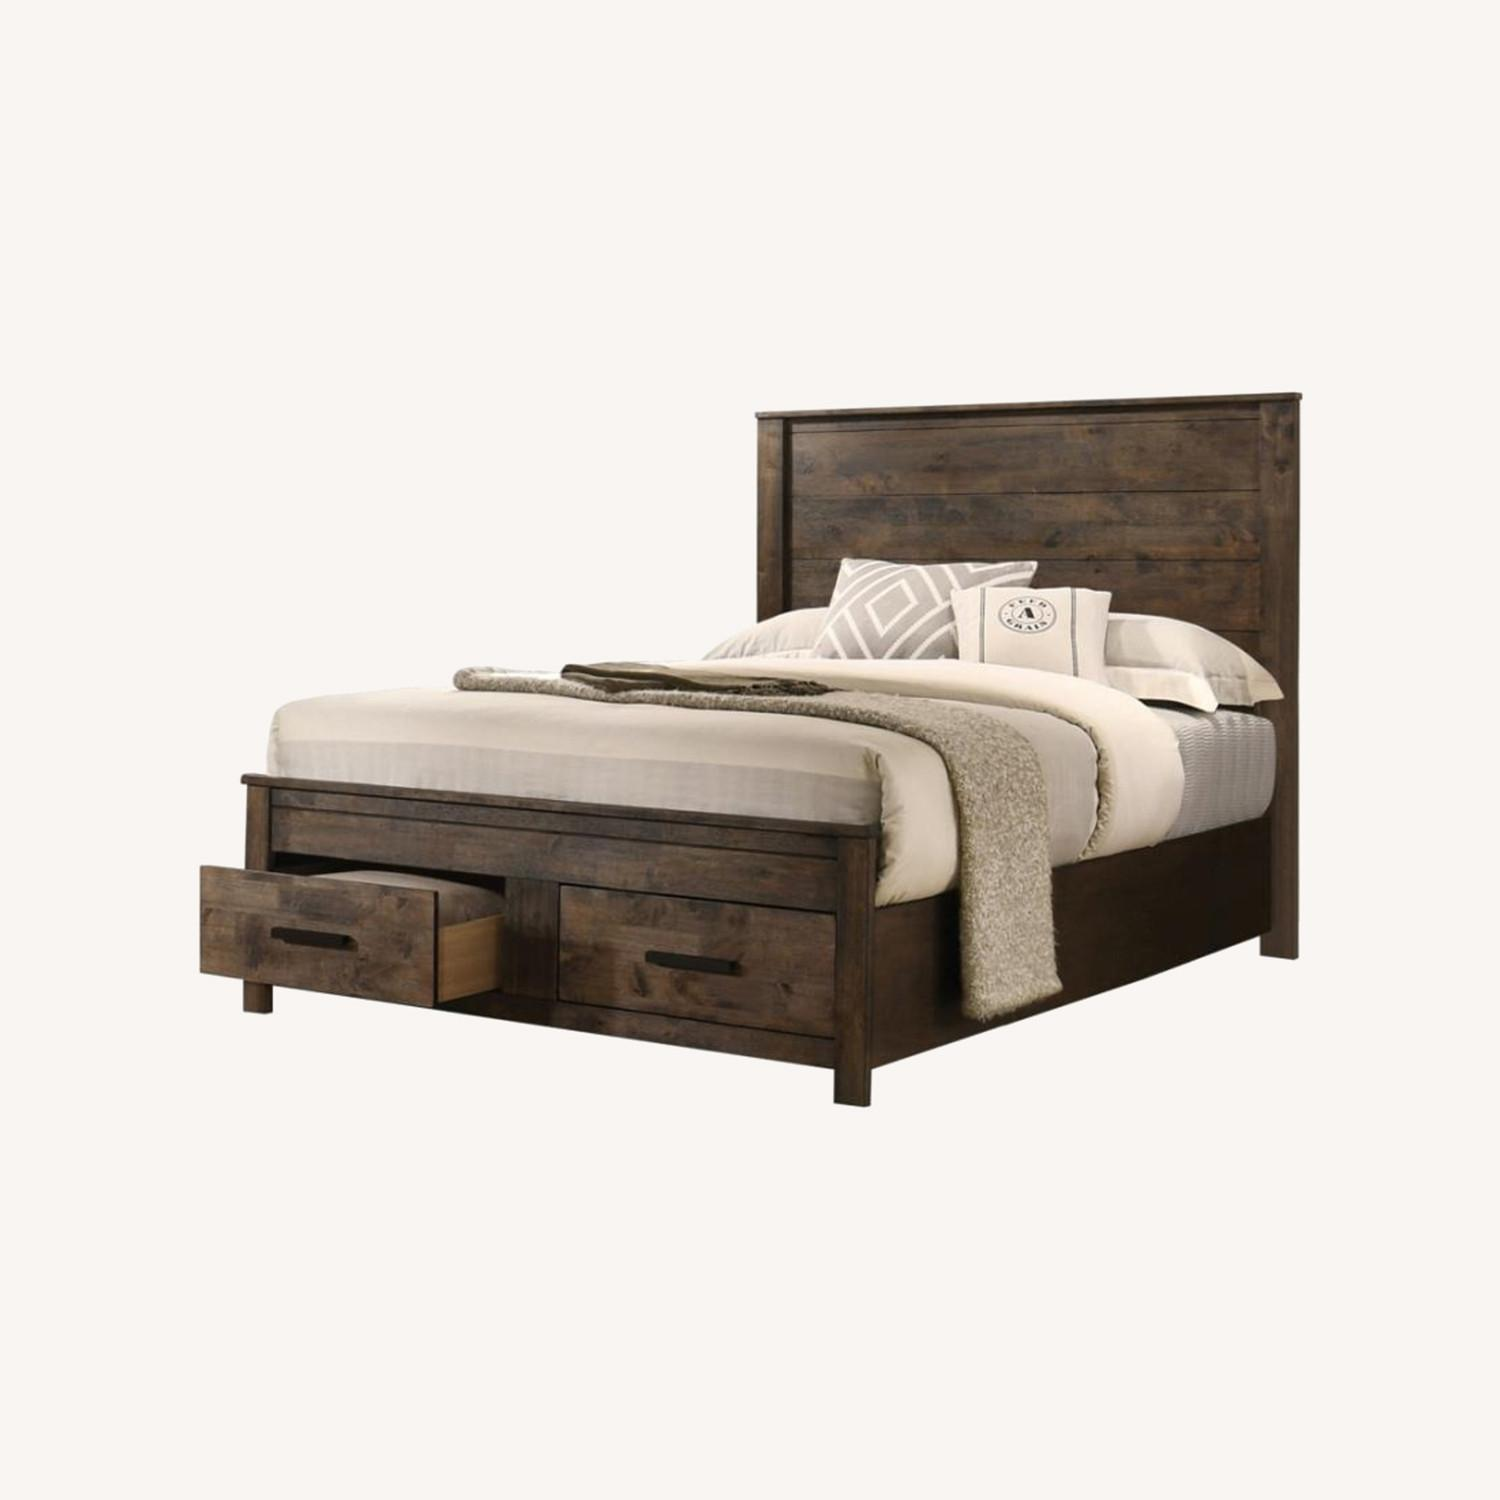 King Bed In Rustic Golden Brown Full Matte Finish - image-3